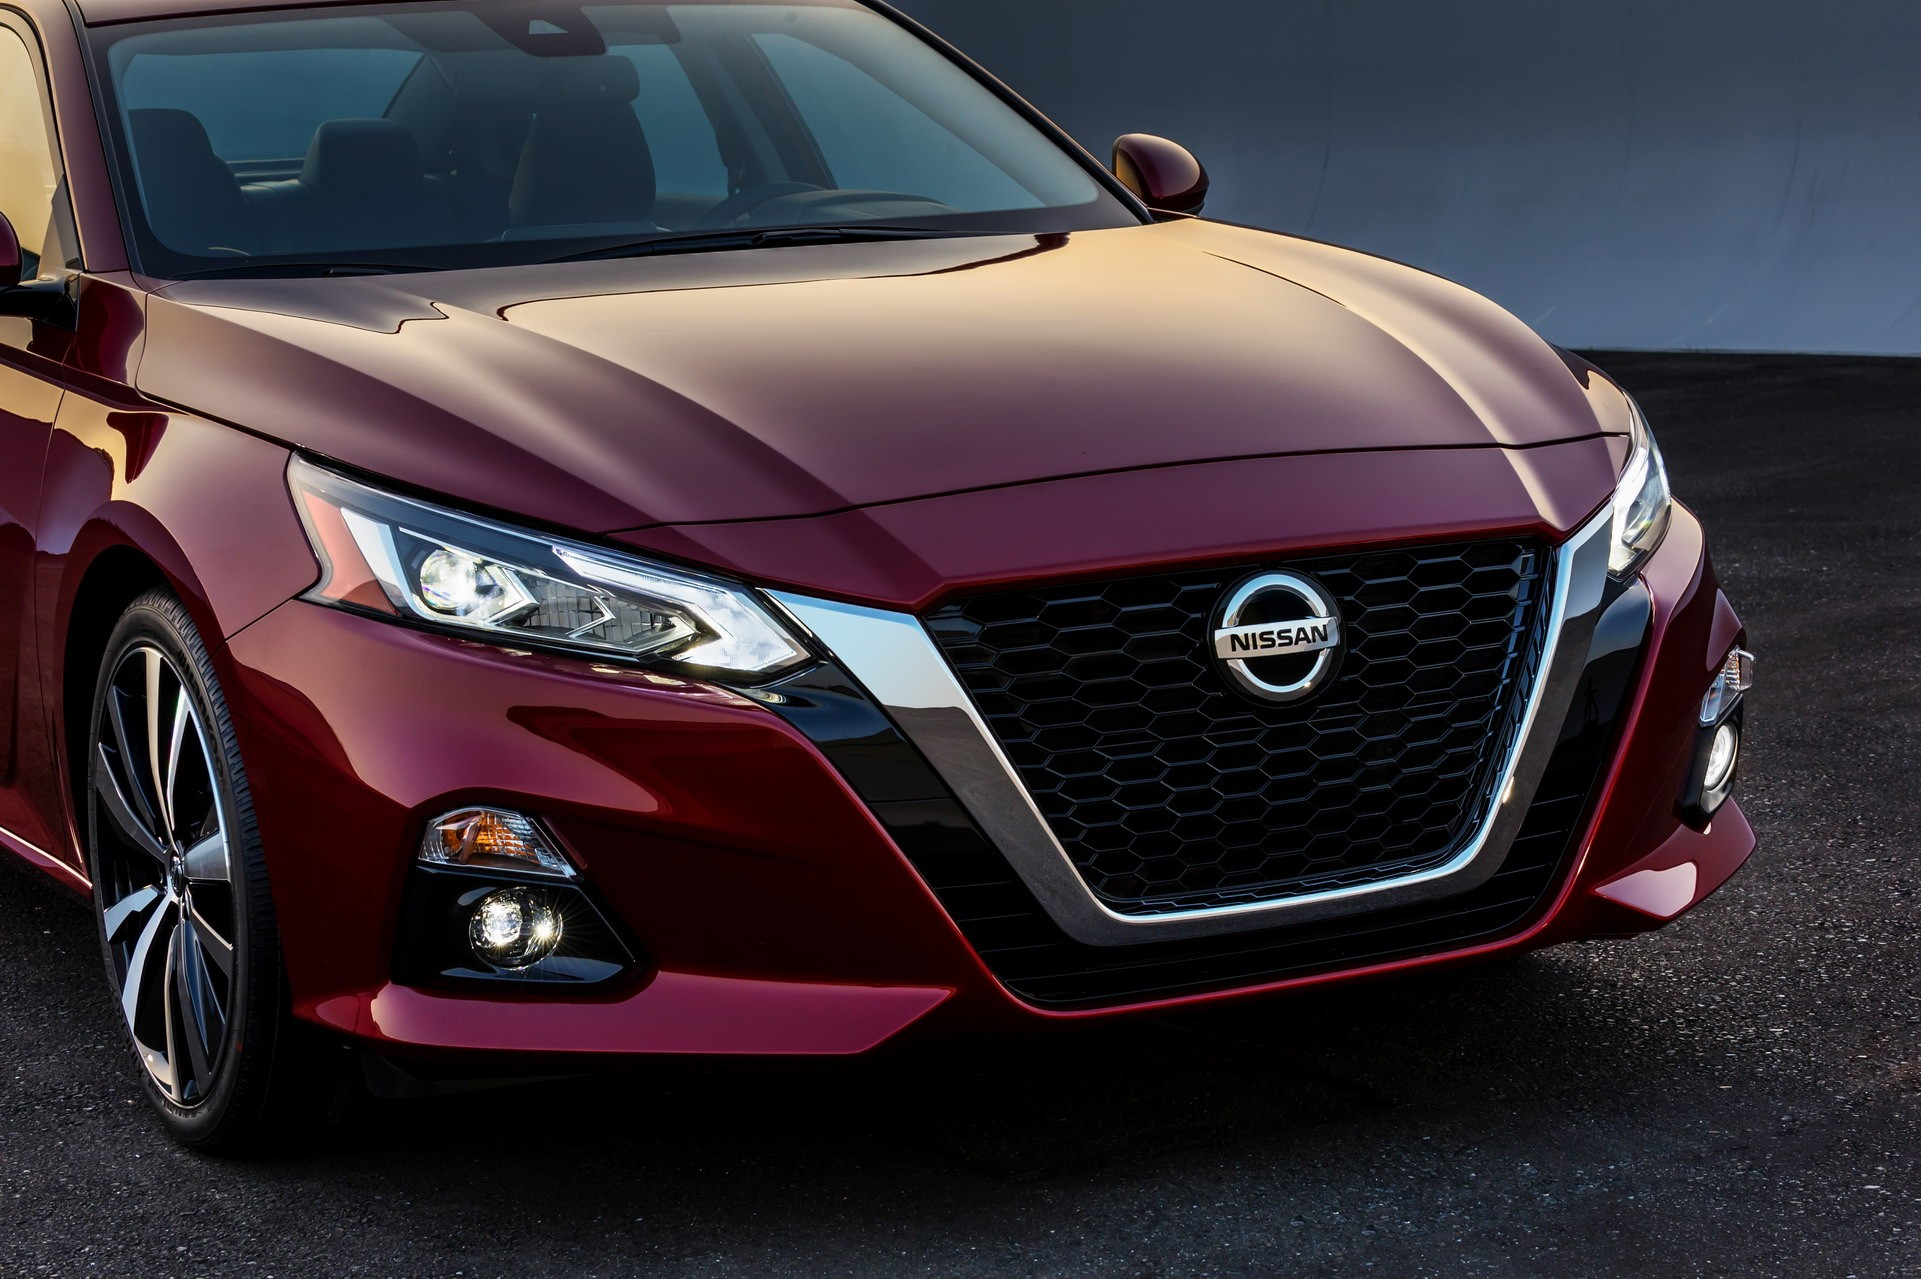 2019 Nissan Altima Debuts in New York With 2-Liter Turbo and AWD - autoevolution